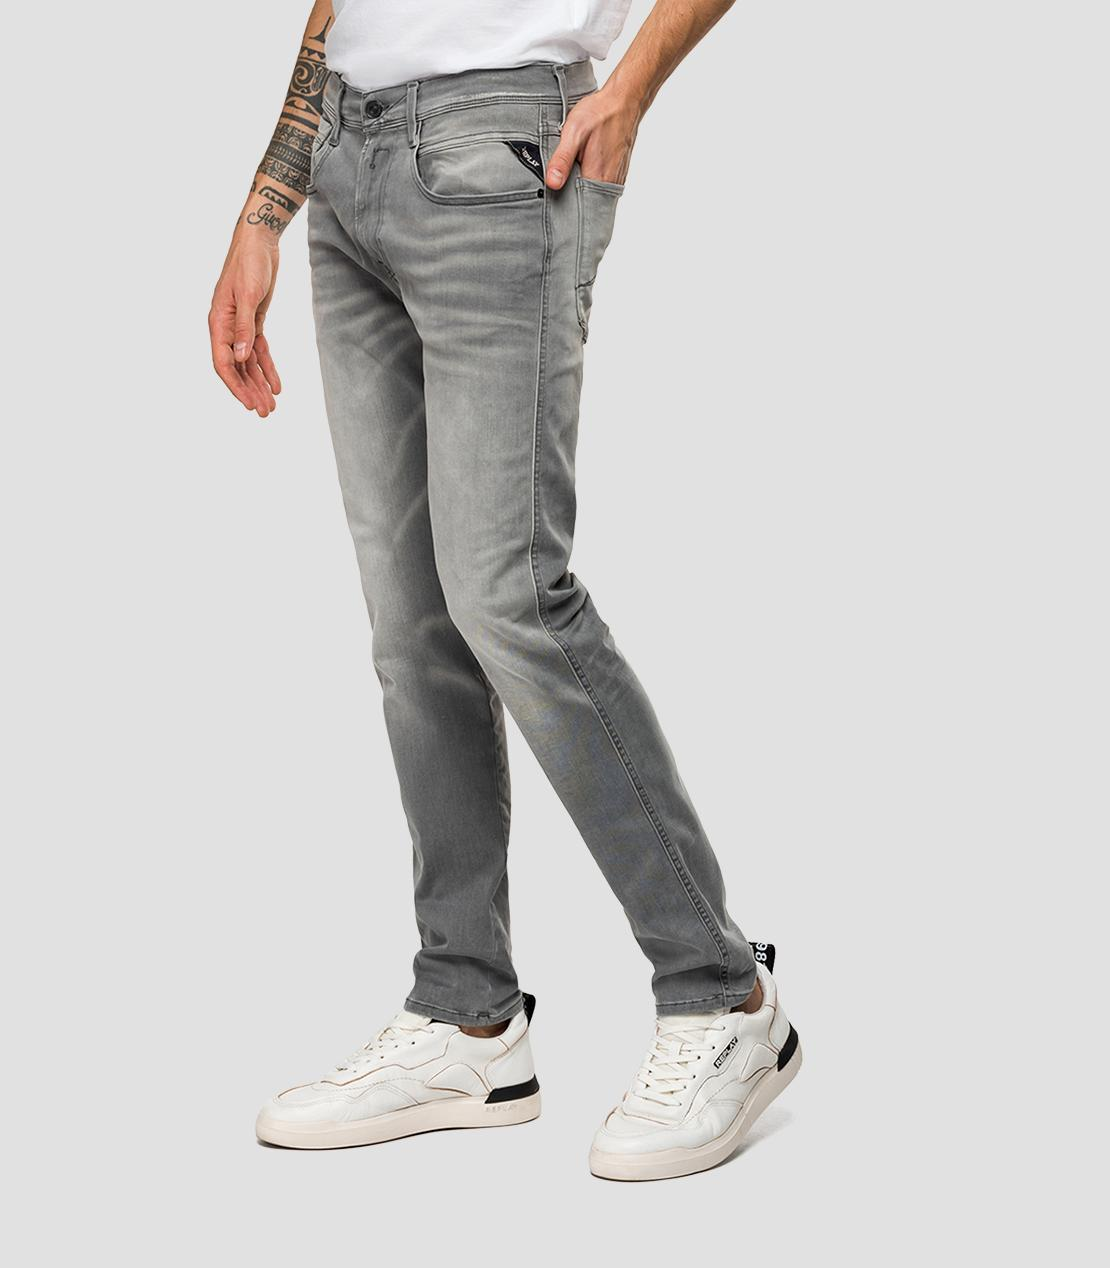 Hyperflex Bio Grey Wash Jeans